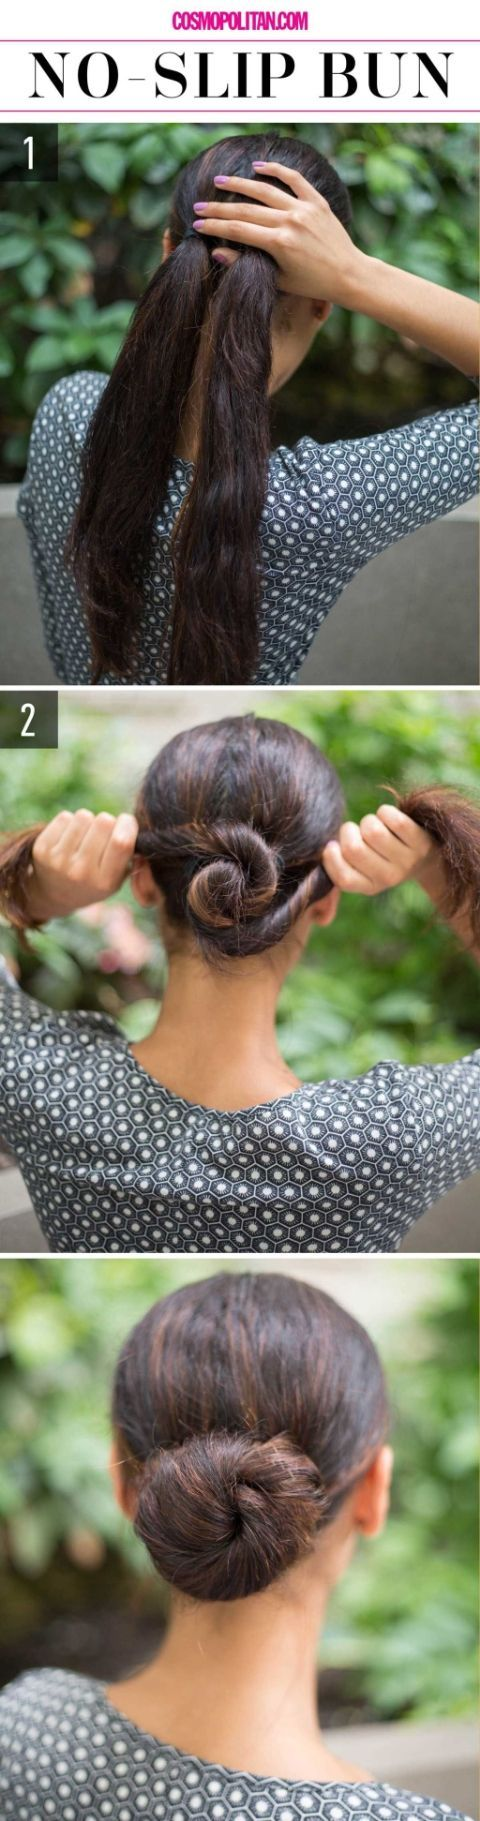 No Slip Bun: For a secure bun that won't budge, tie your hair back in two low ponytails tied close together. Twist the two tails in opposite directions until you've formed your bun, and secure with pins.